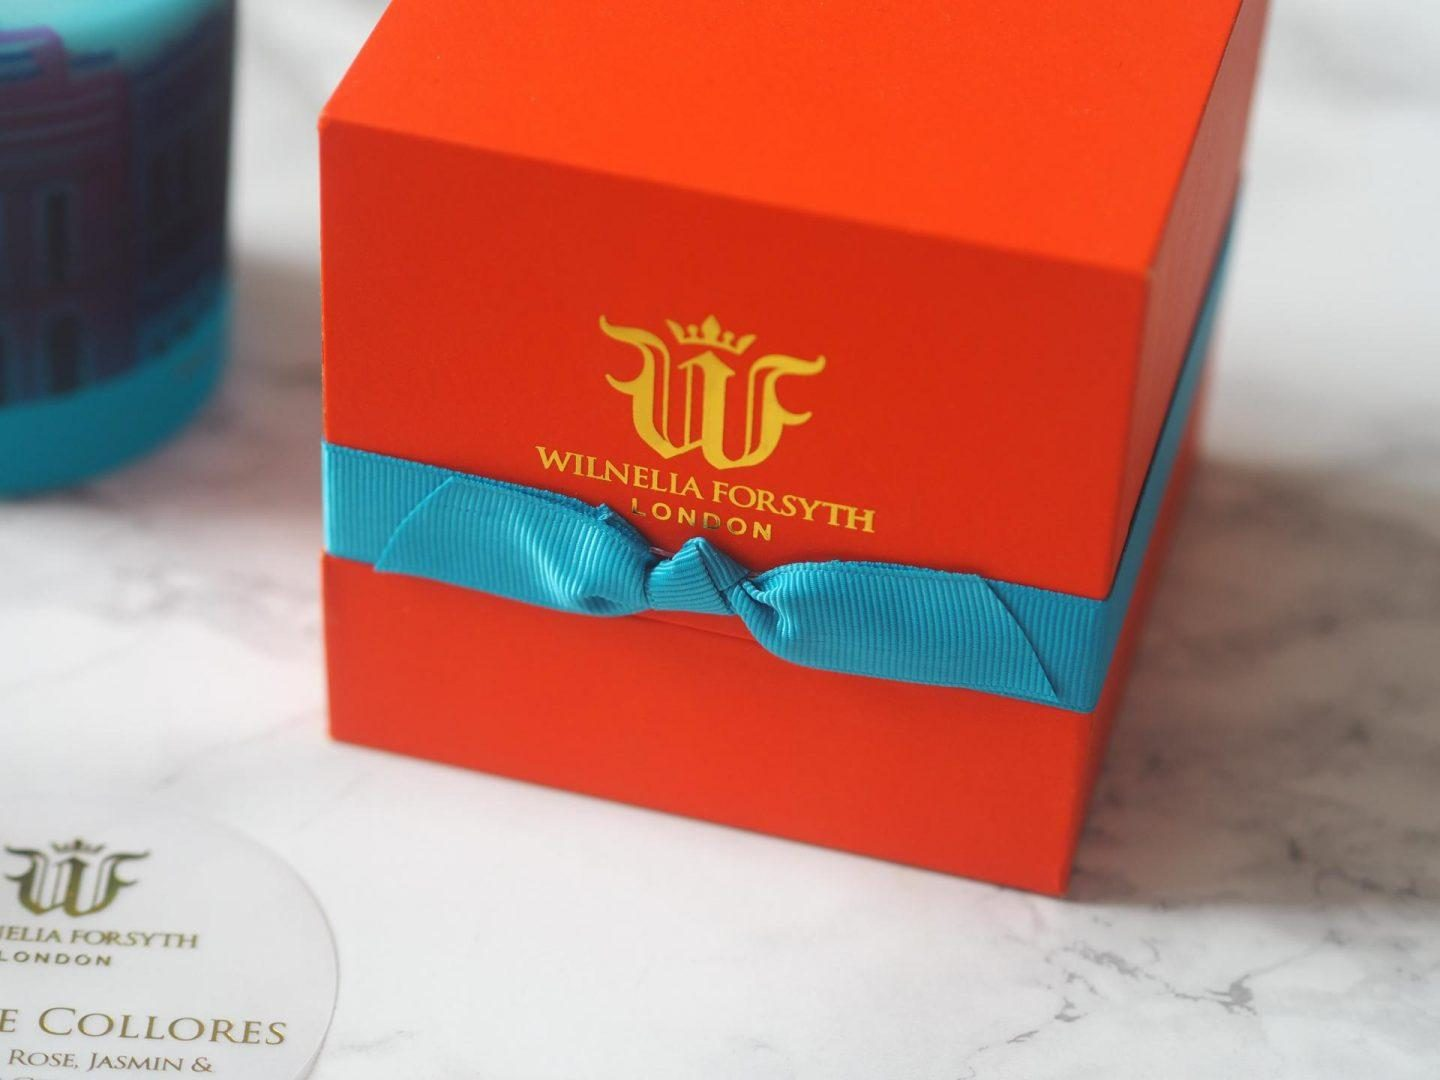 Wilnelia Forsyth London Launches Exclusively at Fortnum & Mason